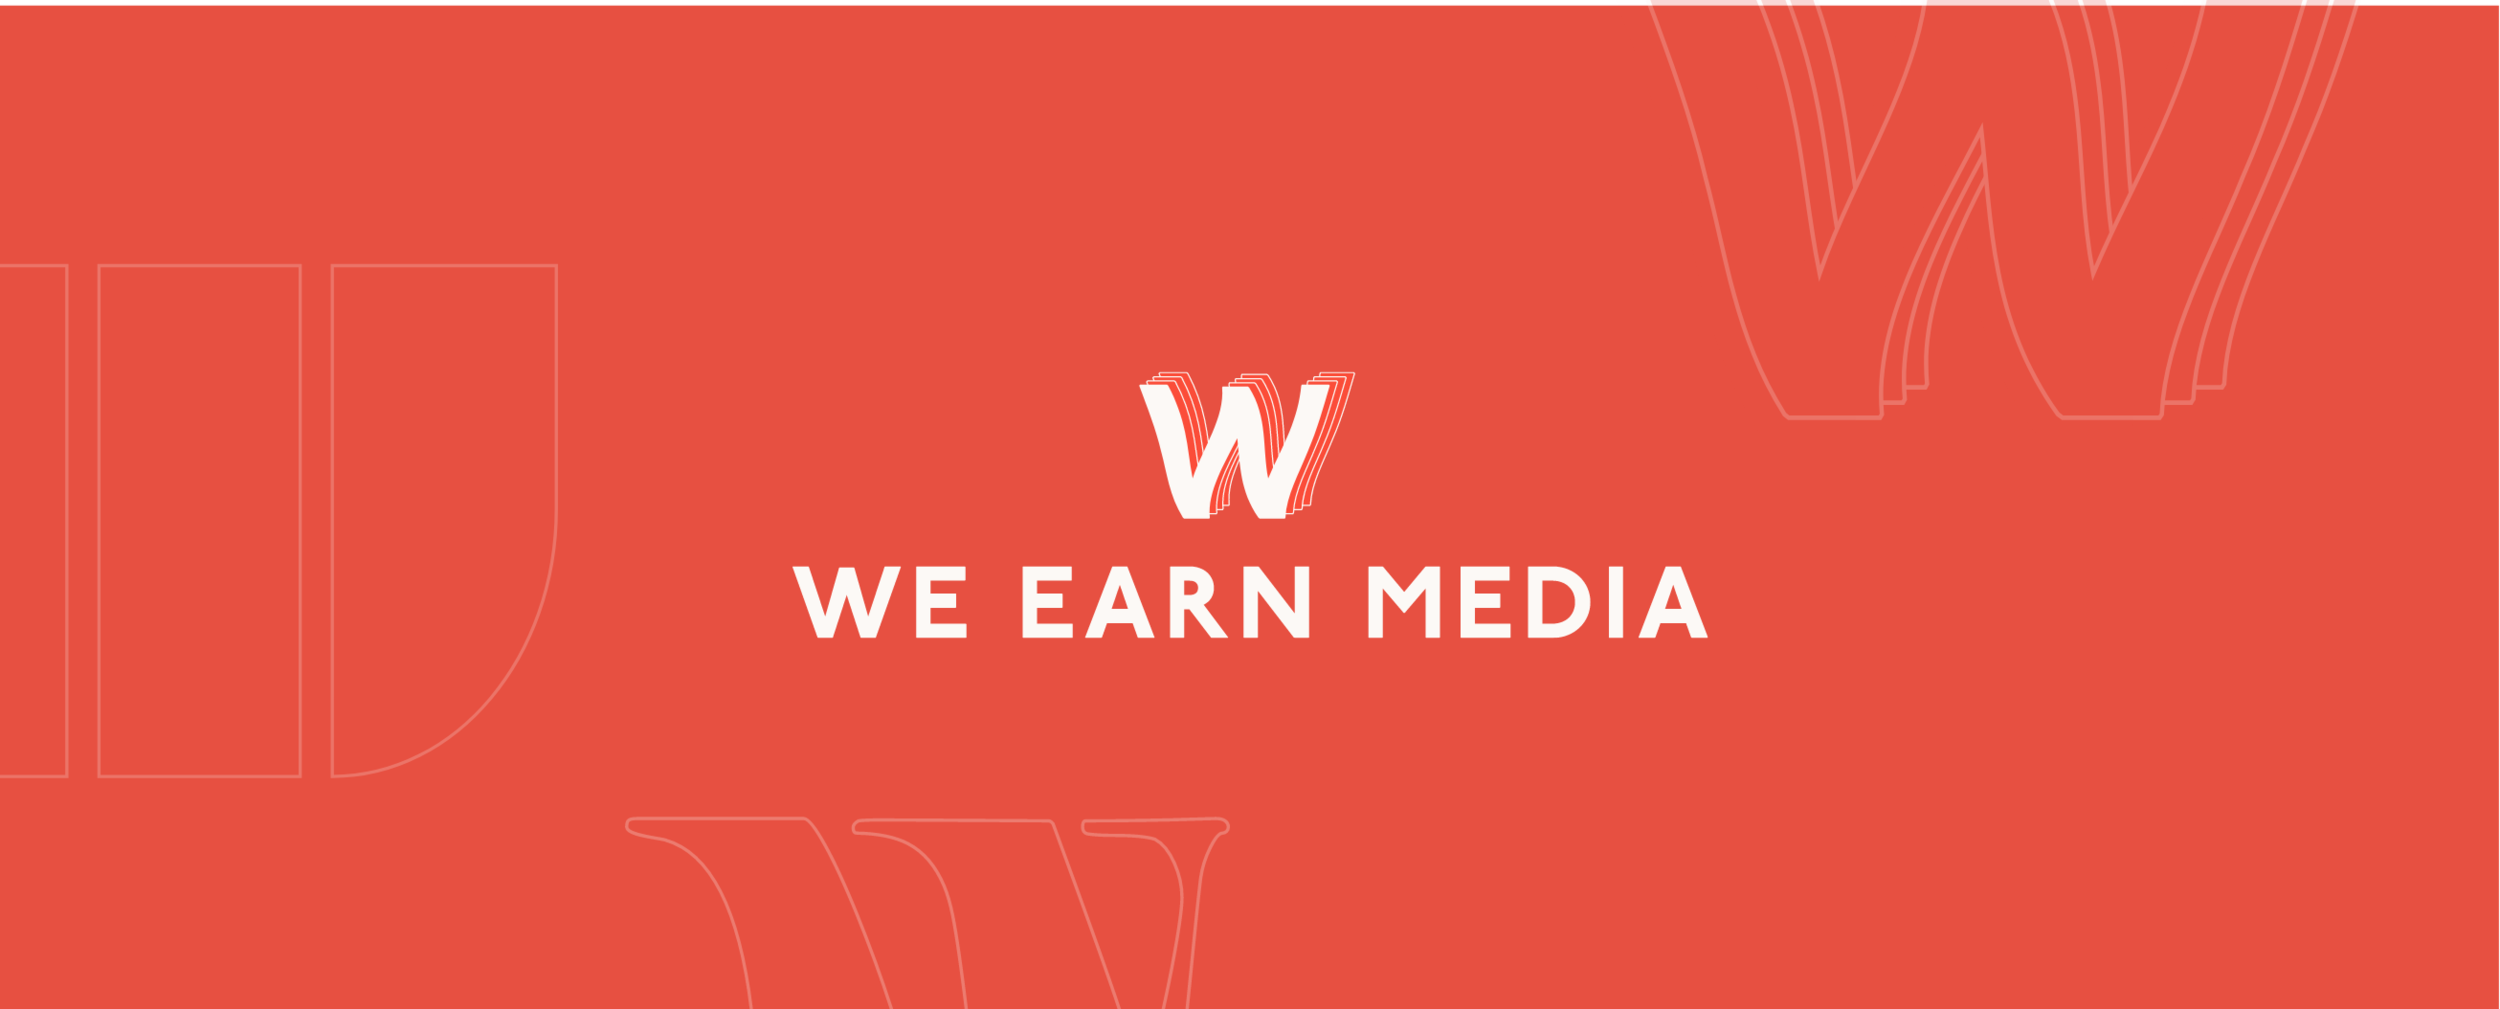 We_Earn_Media_Red_Main_Brand@2x.png